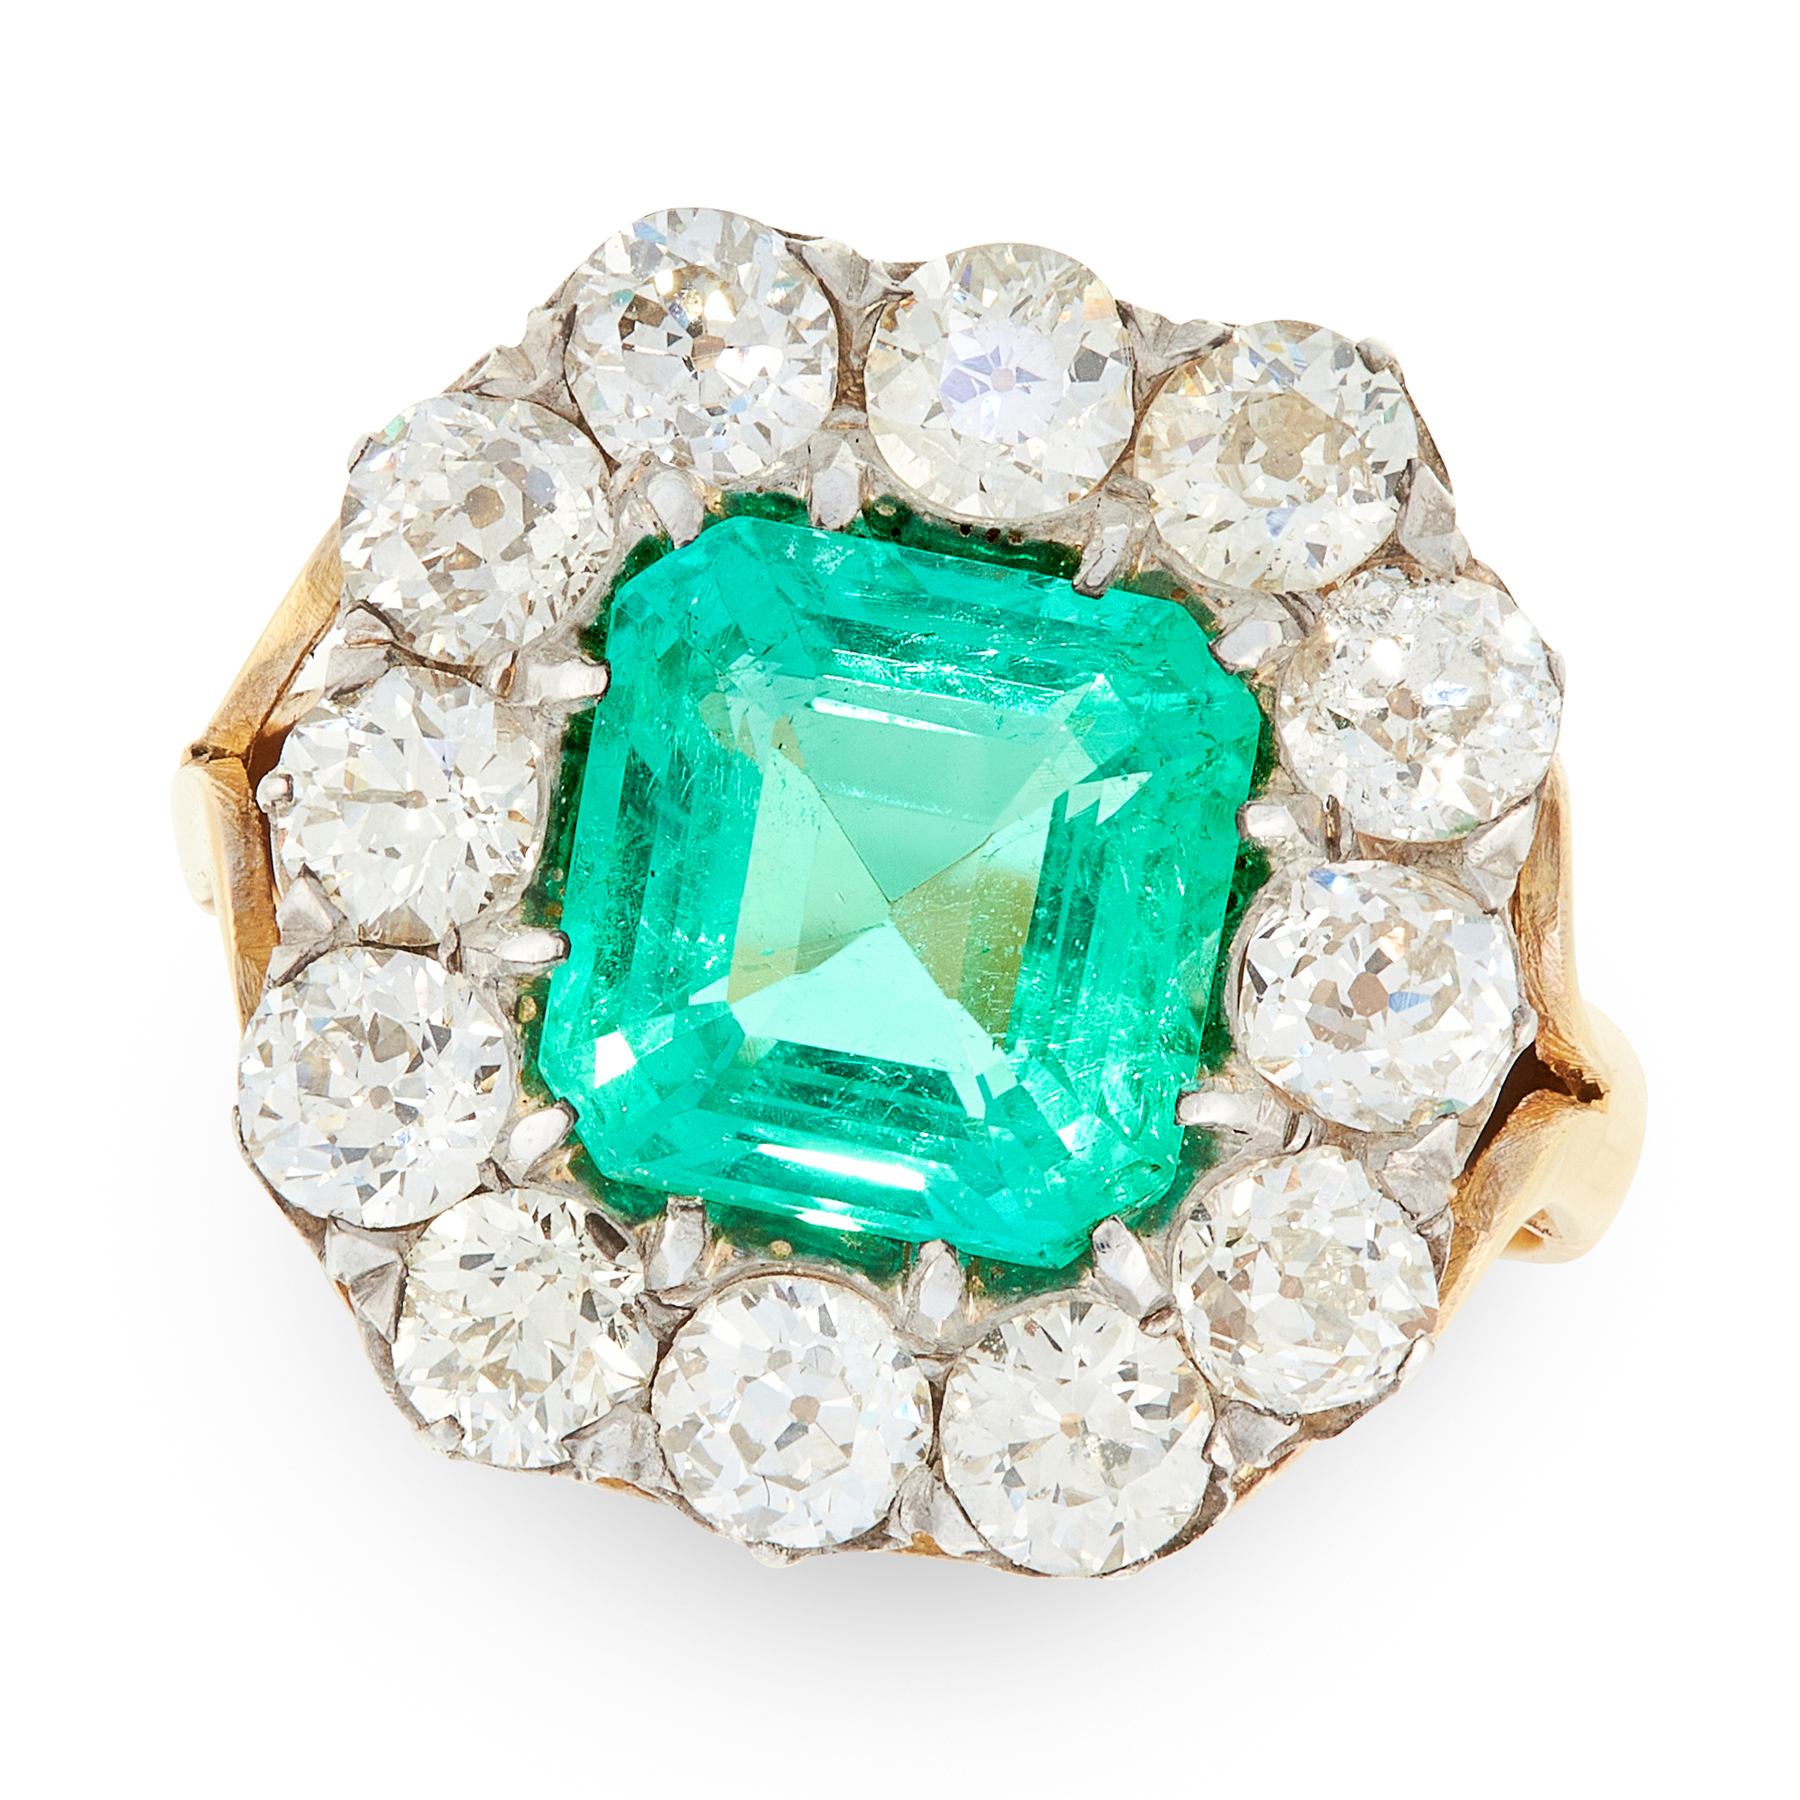 A COLOMBIAN EMERALD AND DIAMOND CLUSTER RING in 18ct yellow gold and silver, set with an emerald cut